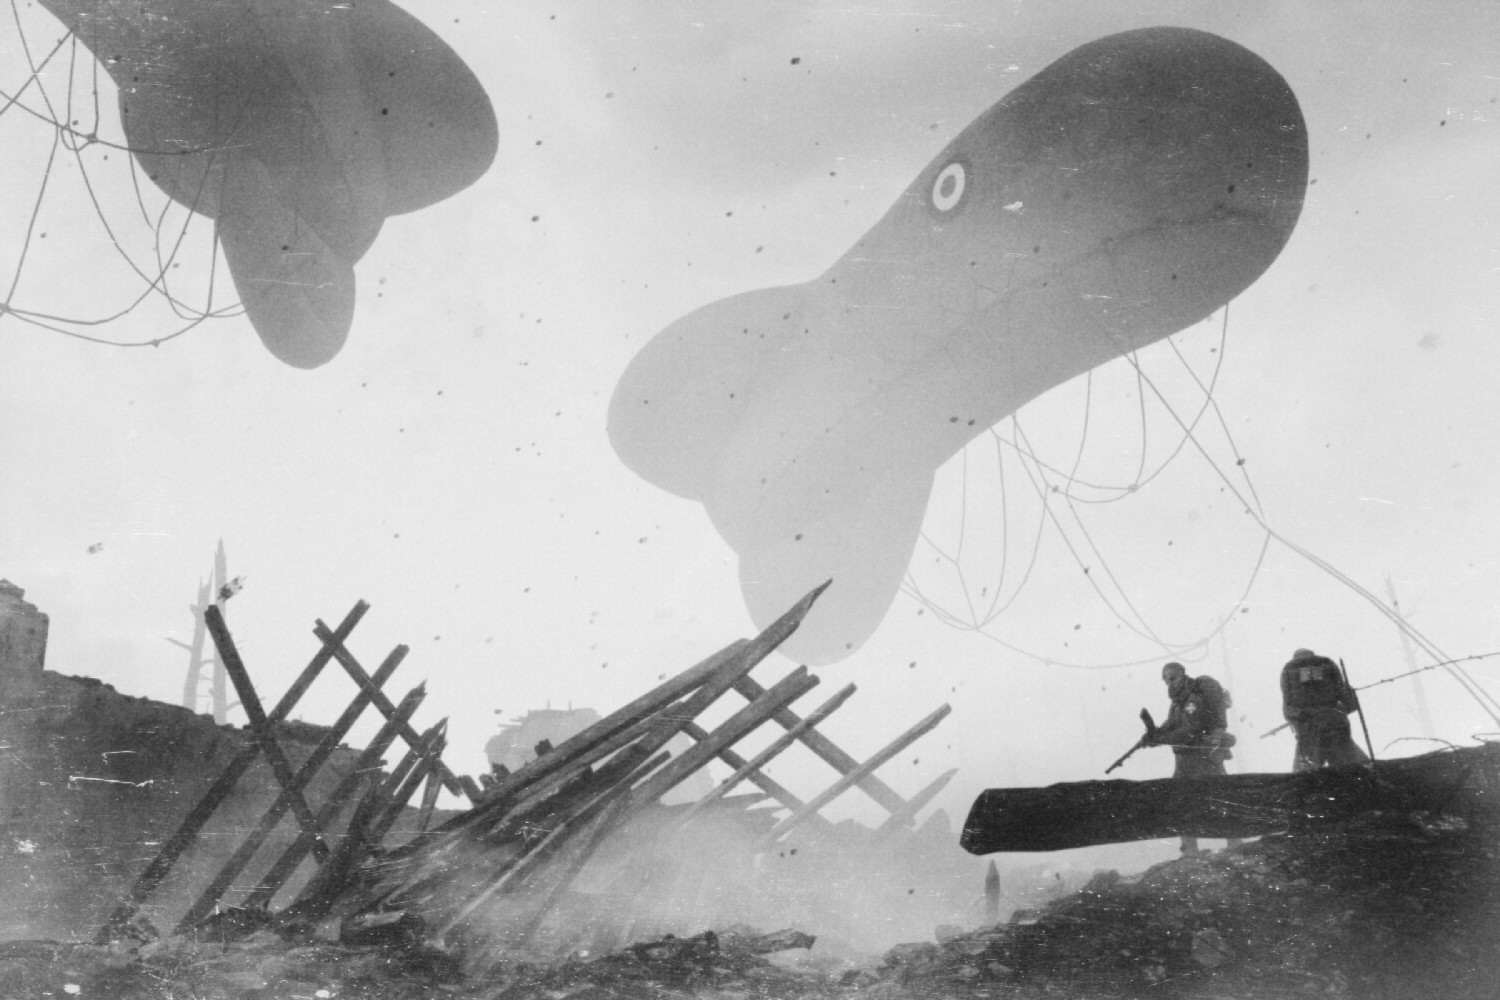 Battlefield 1 Screens Look Hauntingly Realistic With Black & White Filter